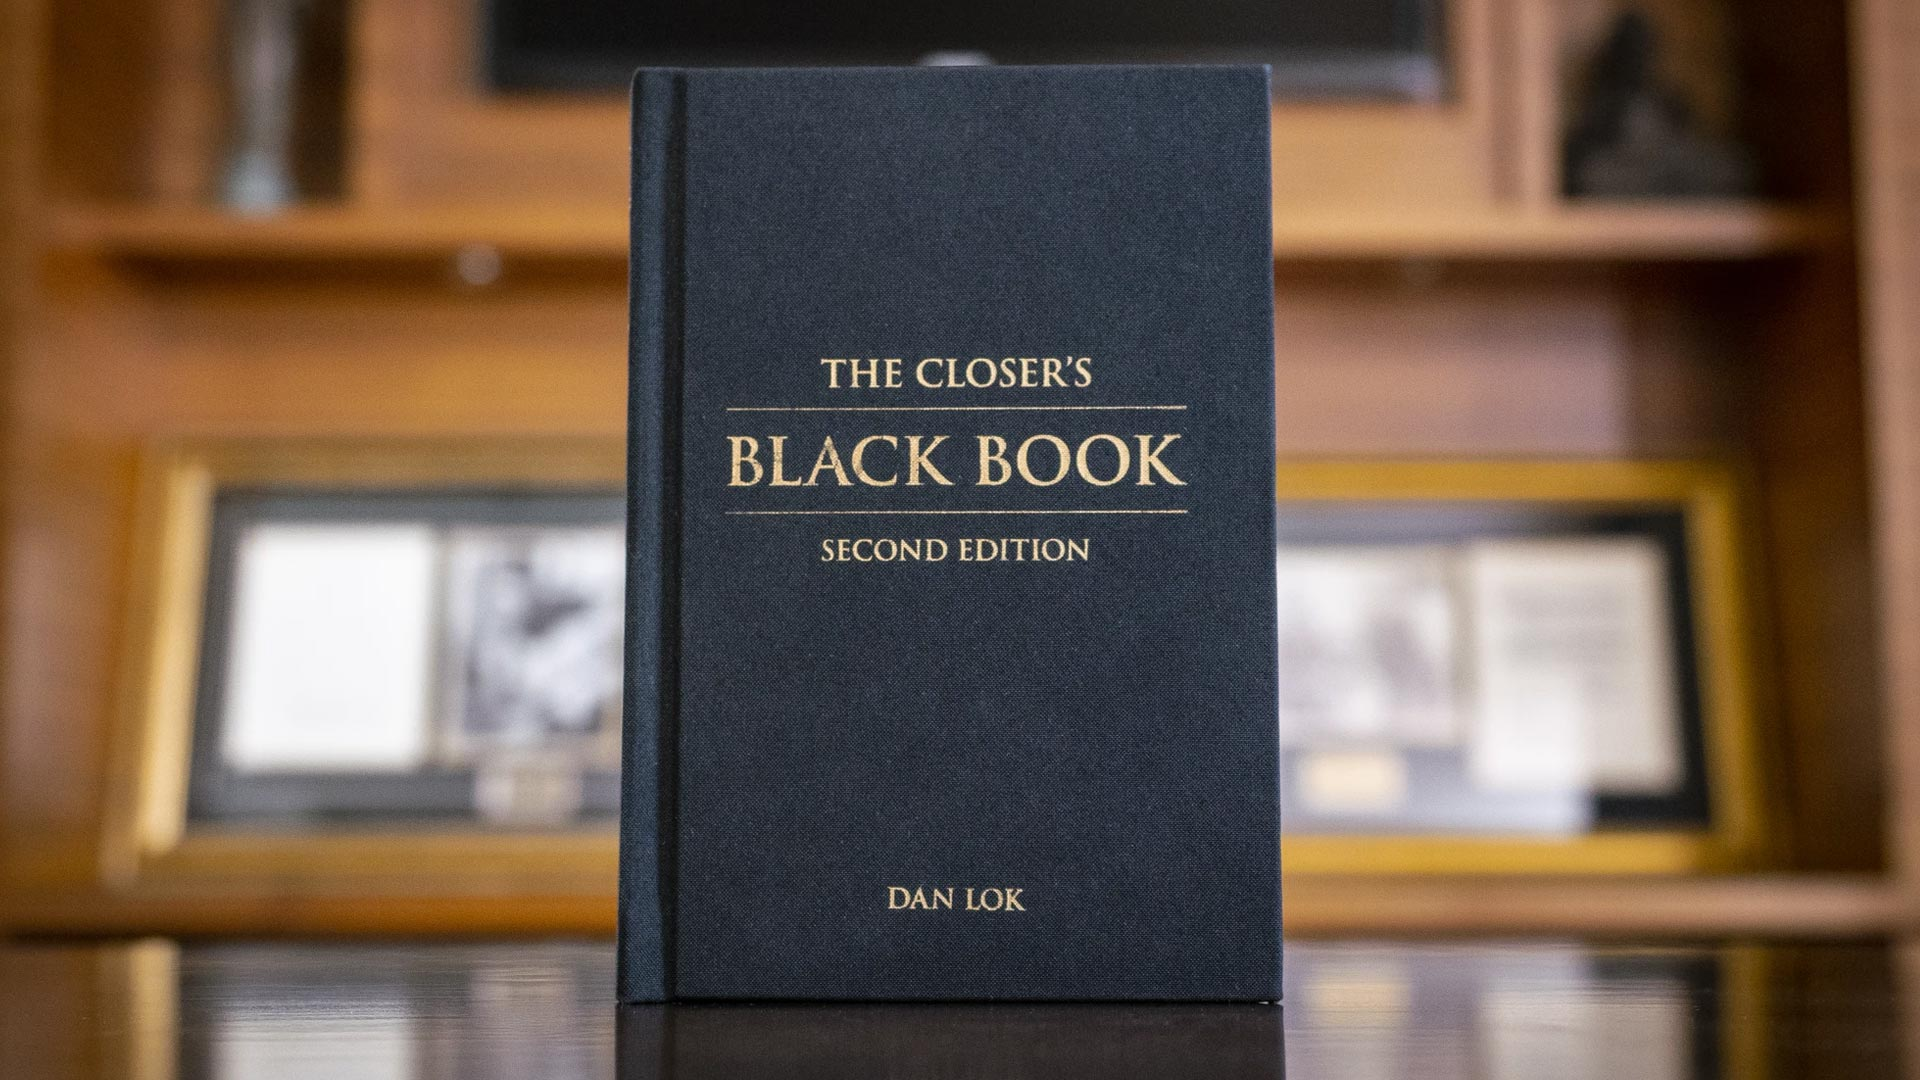 The Closer's Black Book and Roadmap For Success